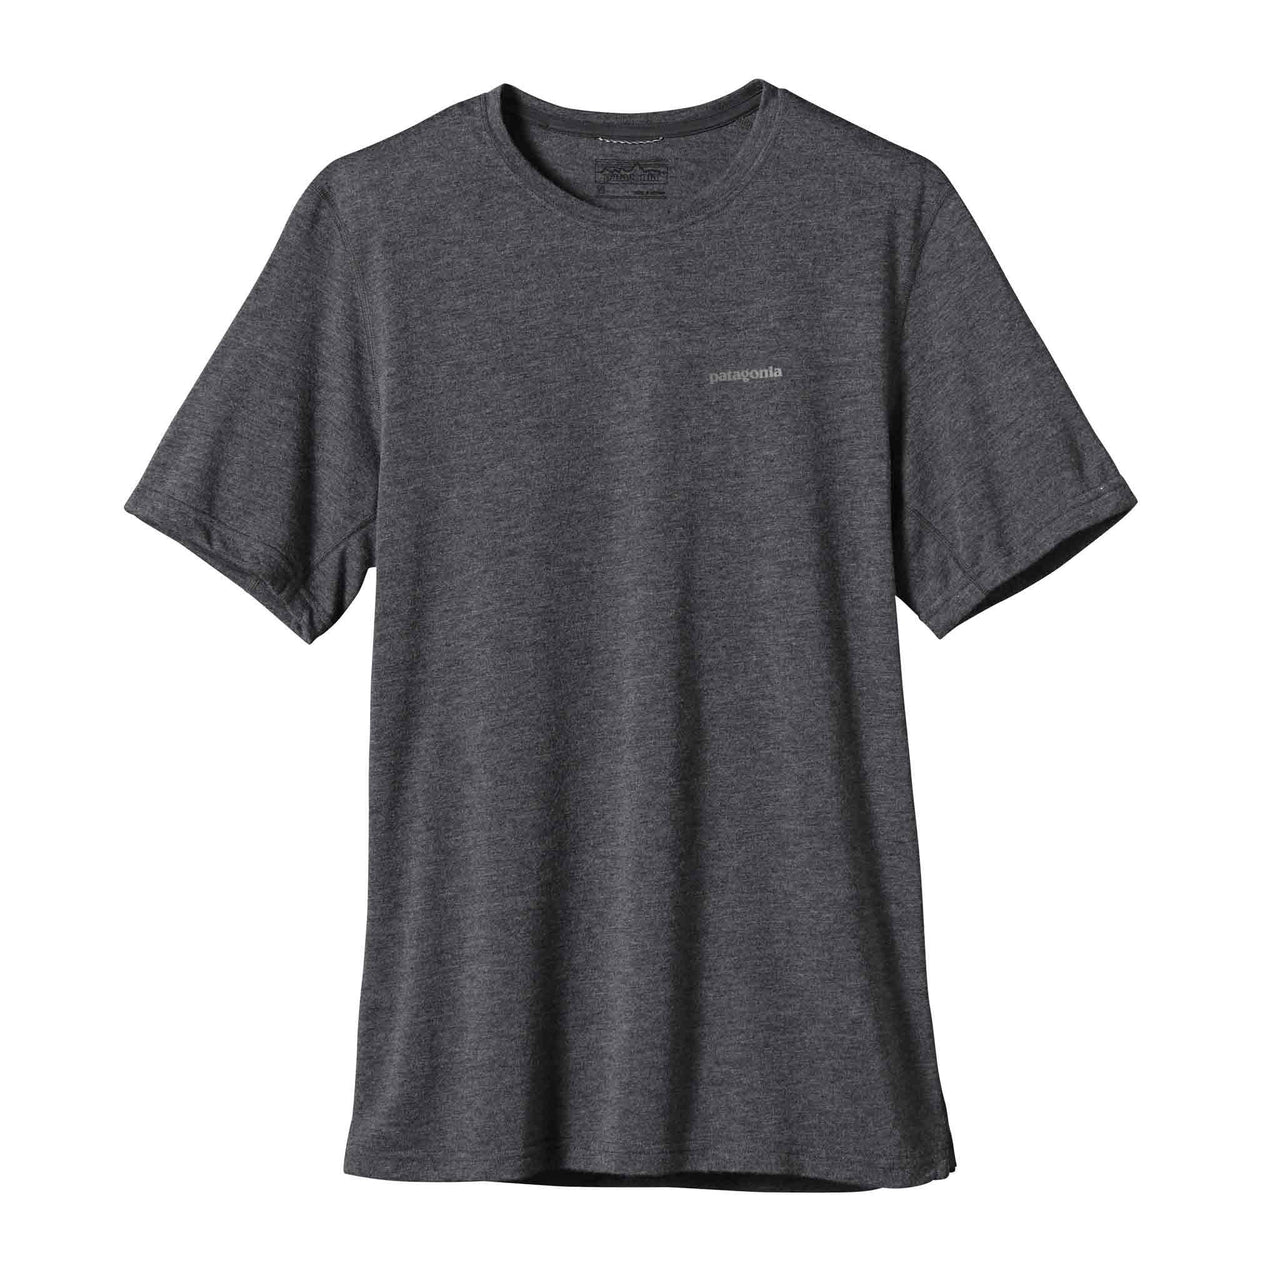 Patagonia_M's S/S Nine Trails Shirt_Black_L